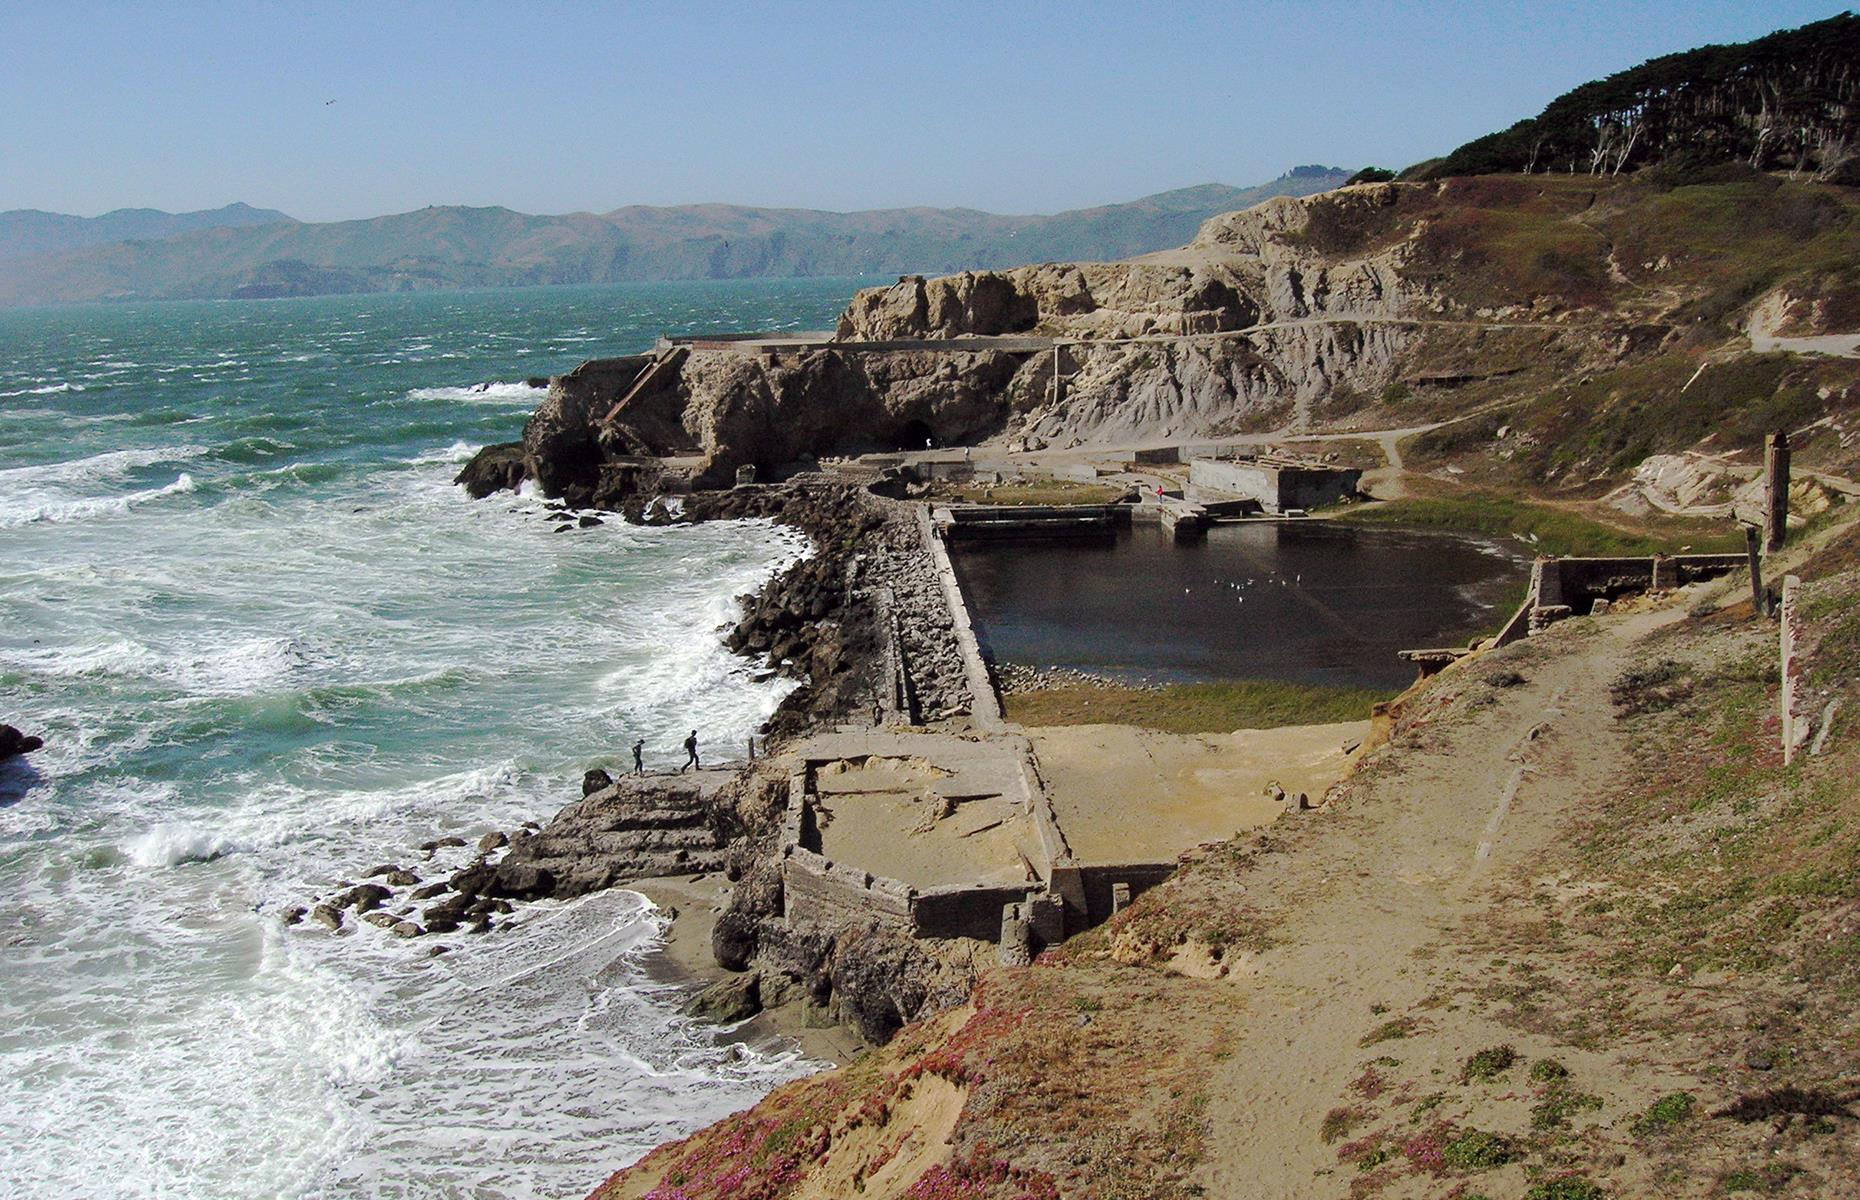 Slide 11 of 39: After struggling financially for many years, the Sutro Baths closed in 1966, and later burned down in June that same year. Now, just the foundations remain as a reminder of the Victorian attraction, with the cliffside setting making the site a popular spot for walkers.